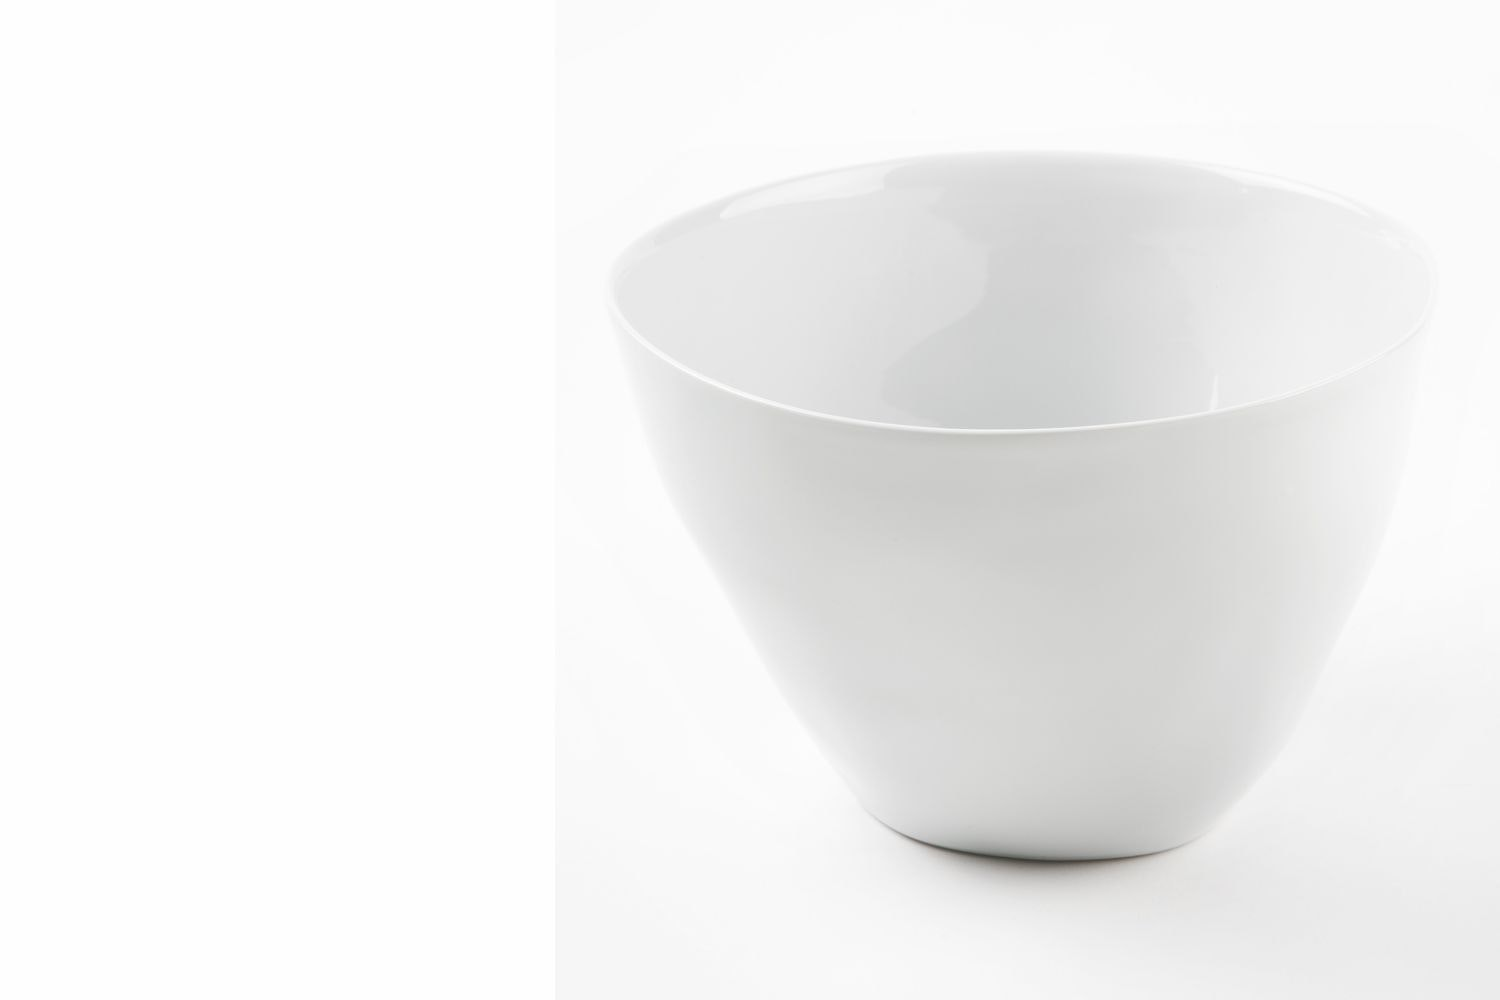 Small & Deep Famished Salad Bowl by Tse & Tse